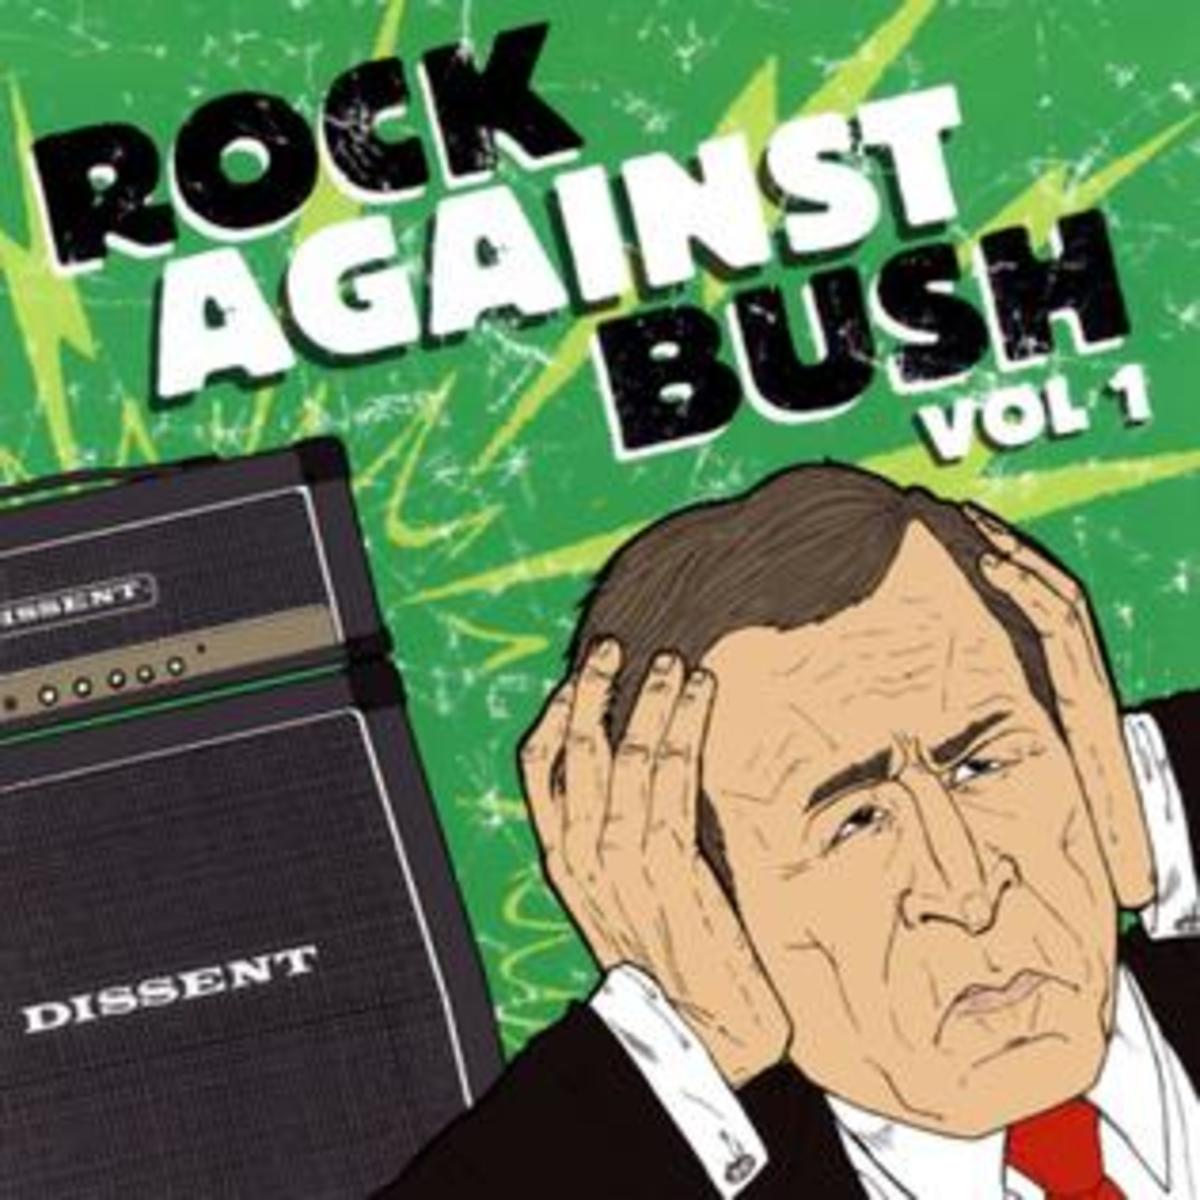 Rock Against Bush, Vol. 1.